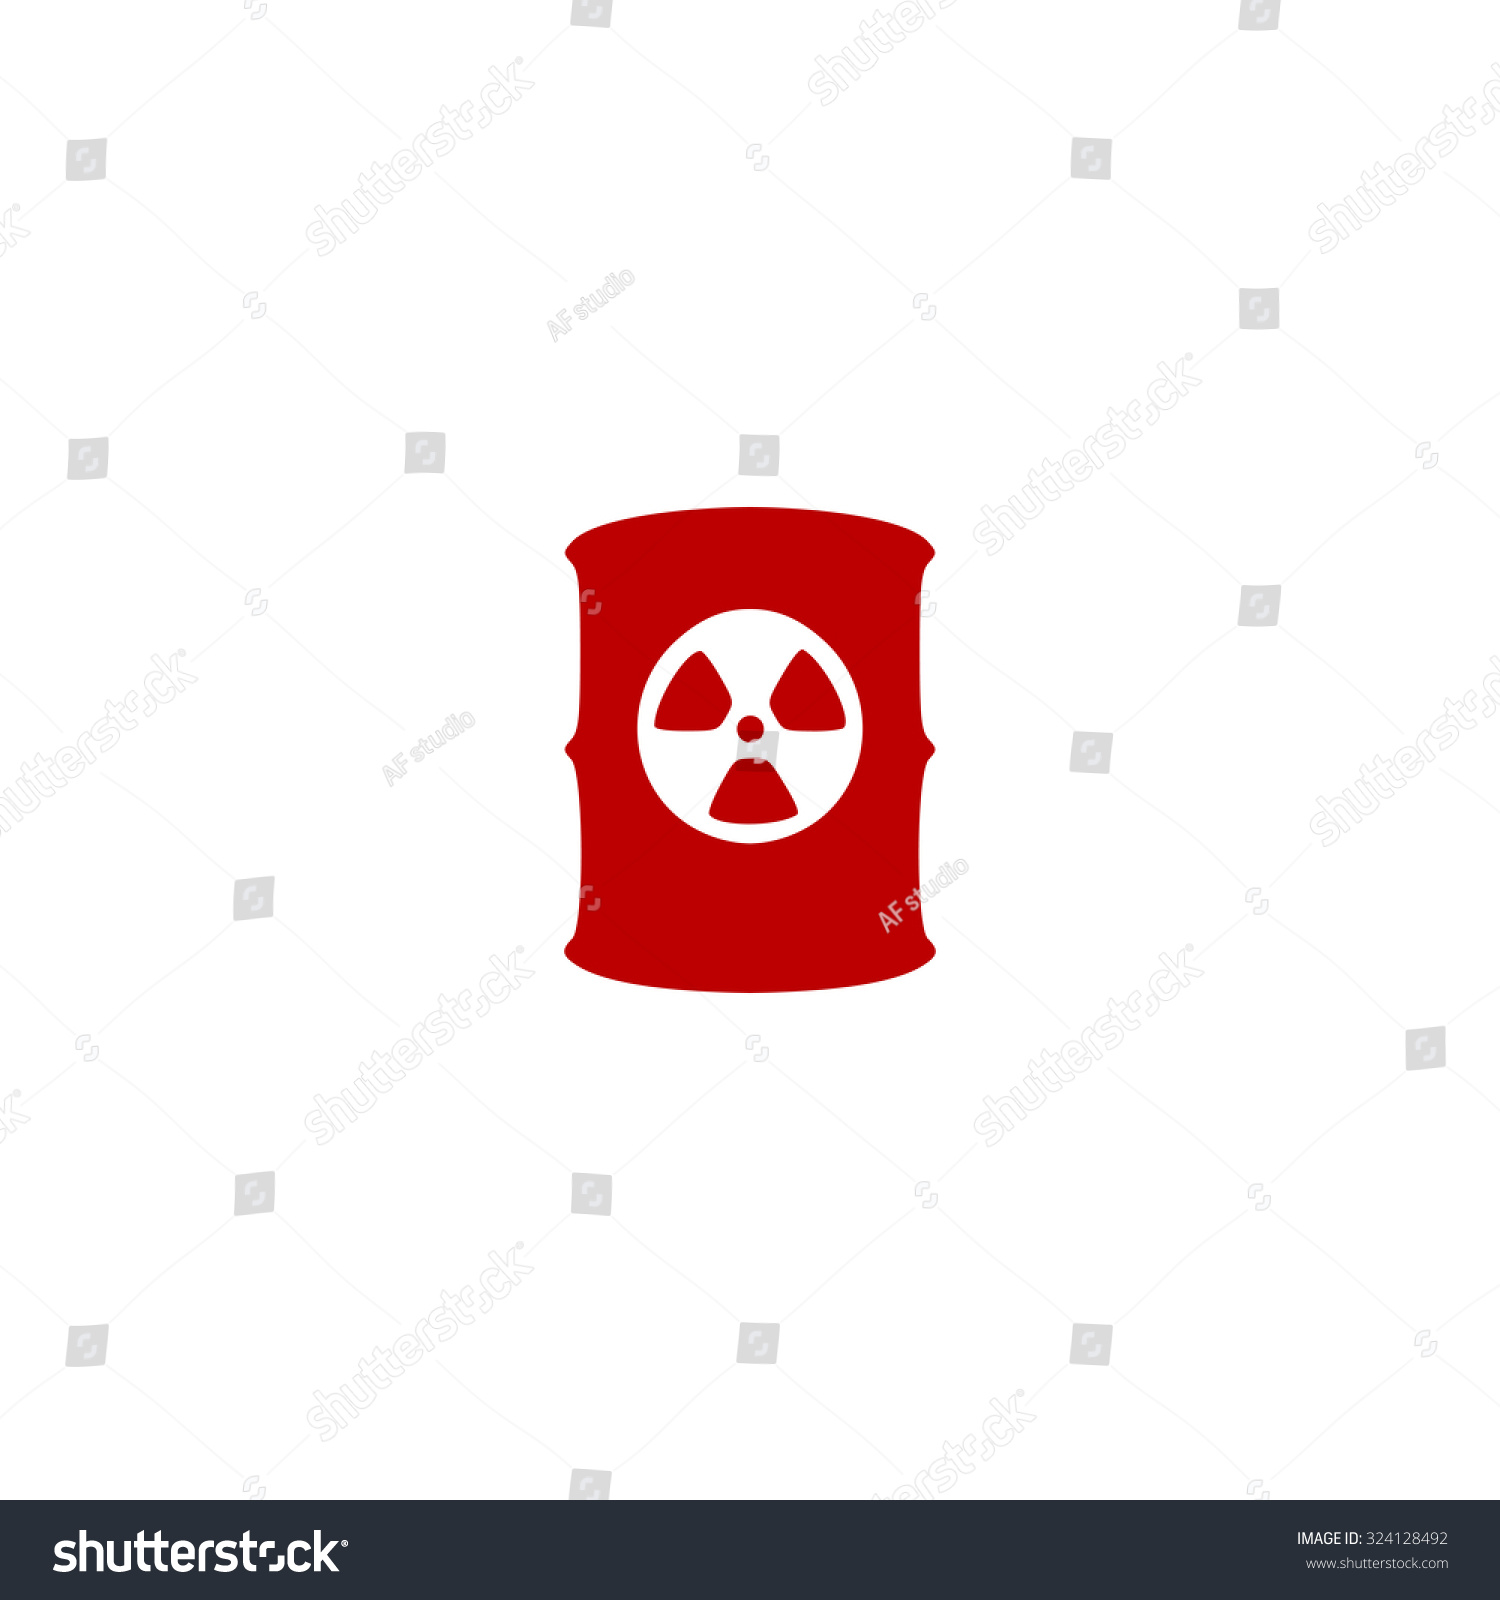 Container Radioactive Waste Red Flat Icon Stock Illustration